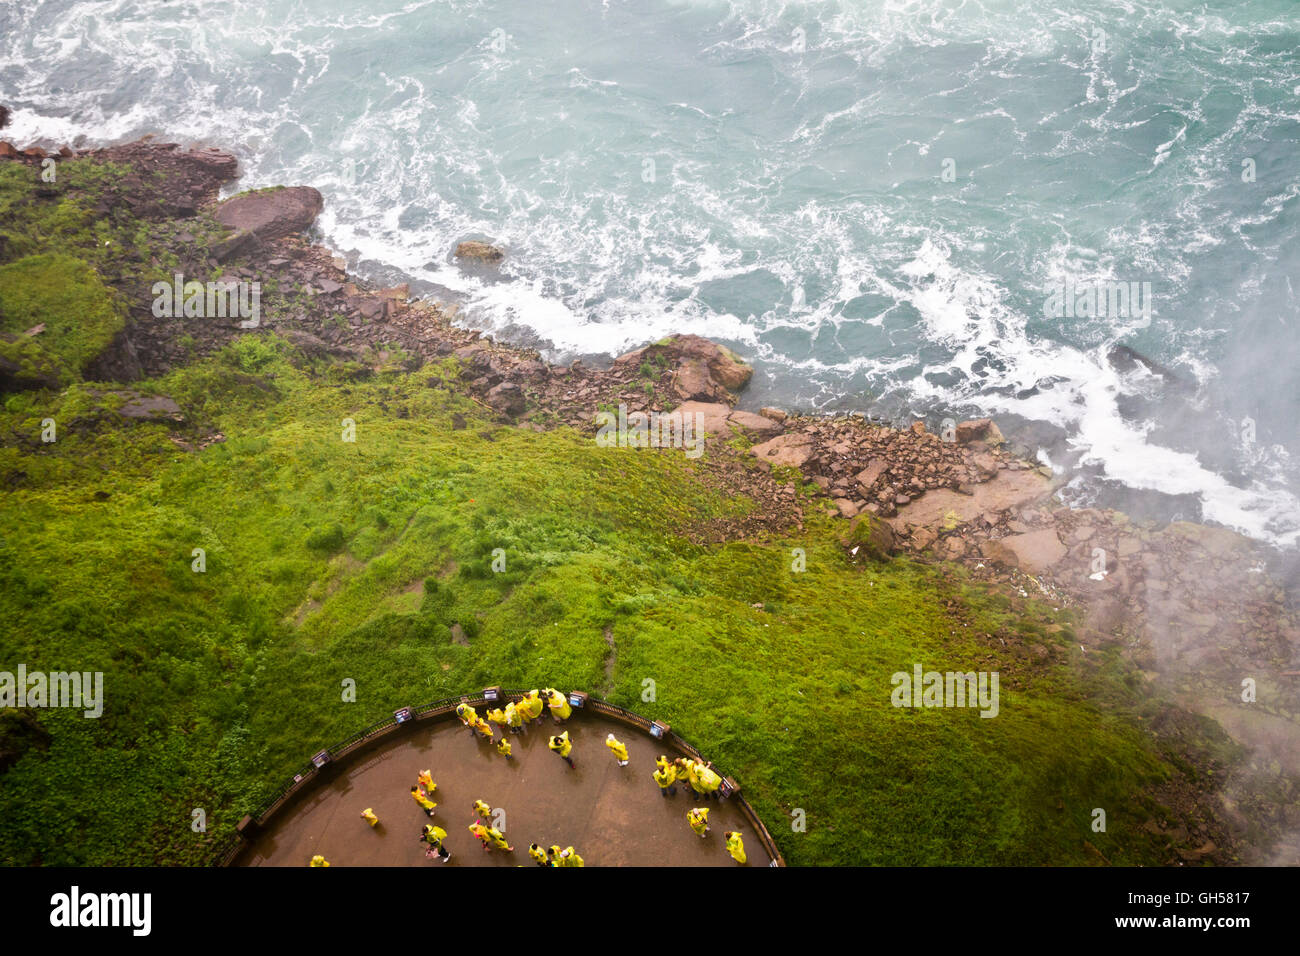 Tourists wearing yellow ponchos look out at the falls from a water-level platform at Niagara Falls, Canada. - Stock Image